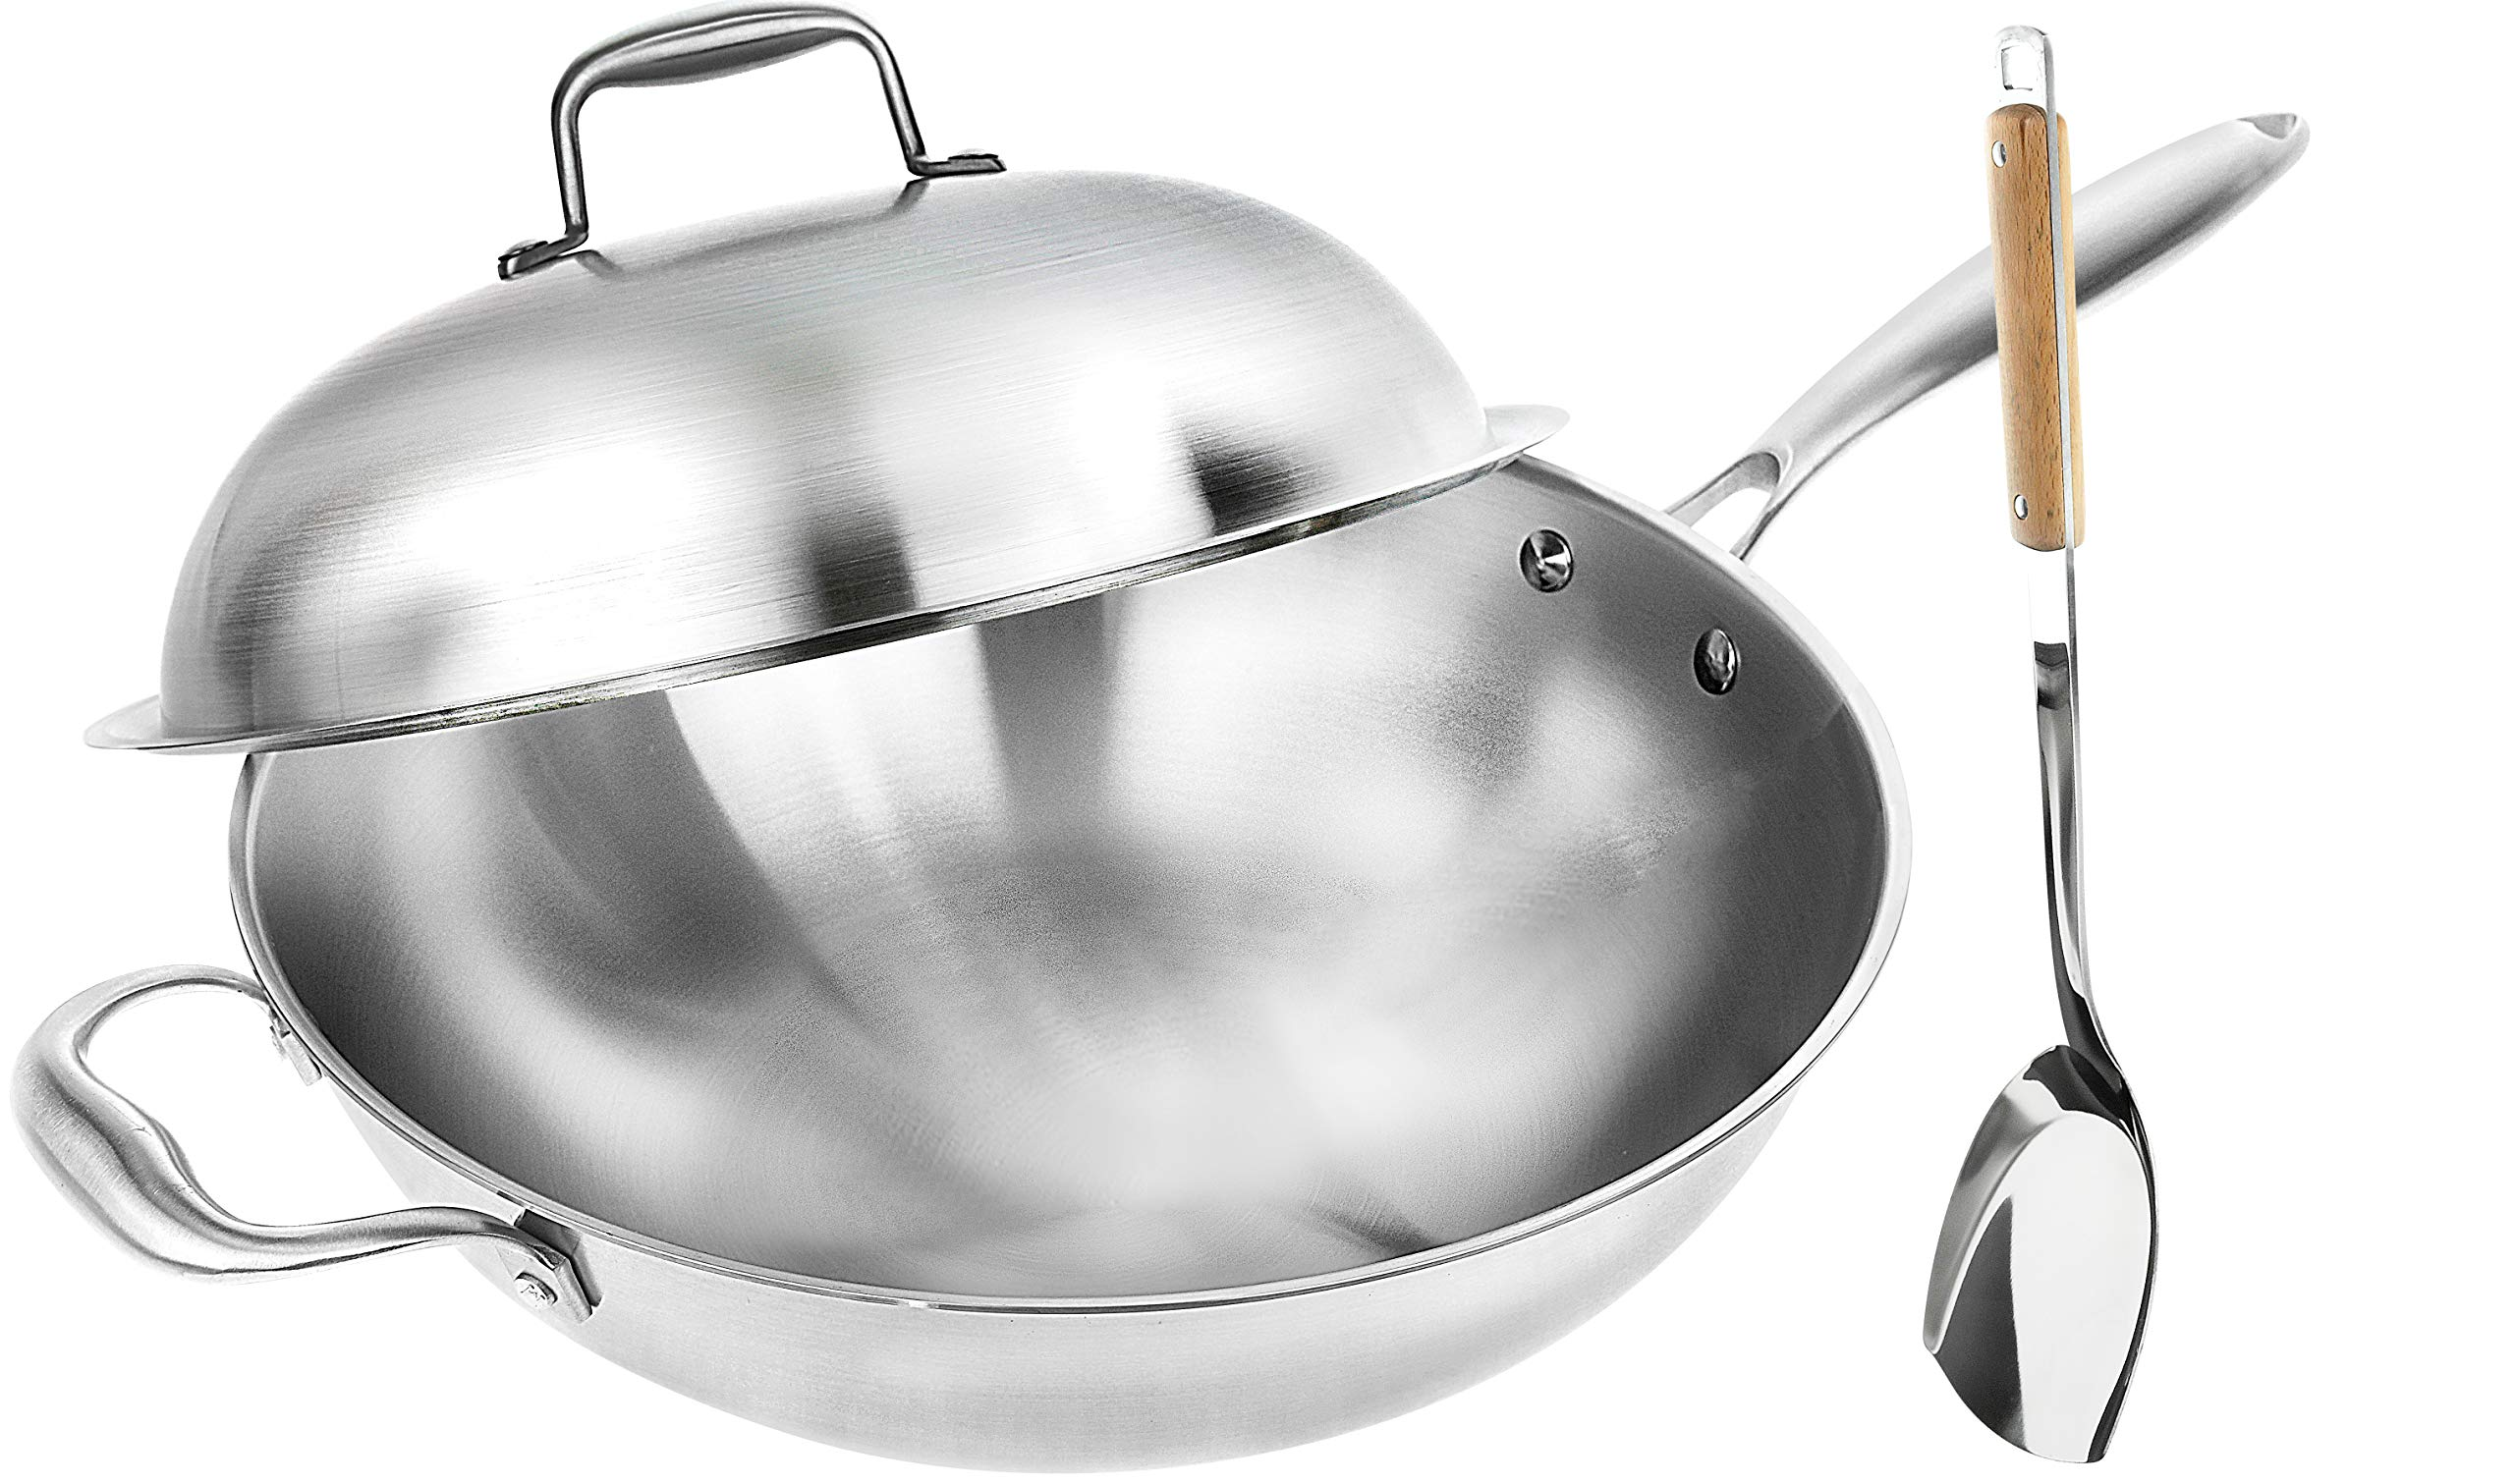 Wok Pan with Premium Lid and Bonus Bamboo Spatula - Thick 13 Inch Stainless Steel Fry Pan with Ergonomic Handle and Non-Stick Scratch-Resistant Surface - Sturdy 2mm Thick Design That is Oven-Safe by Willow & Everett